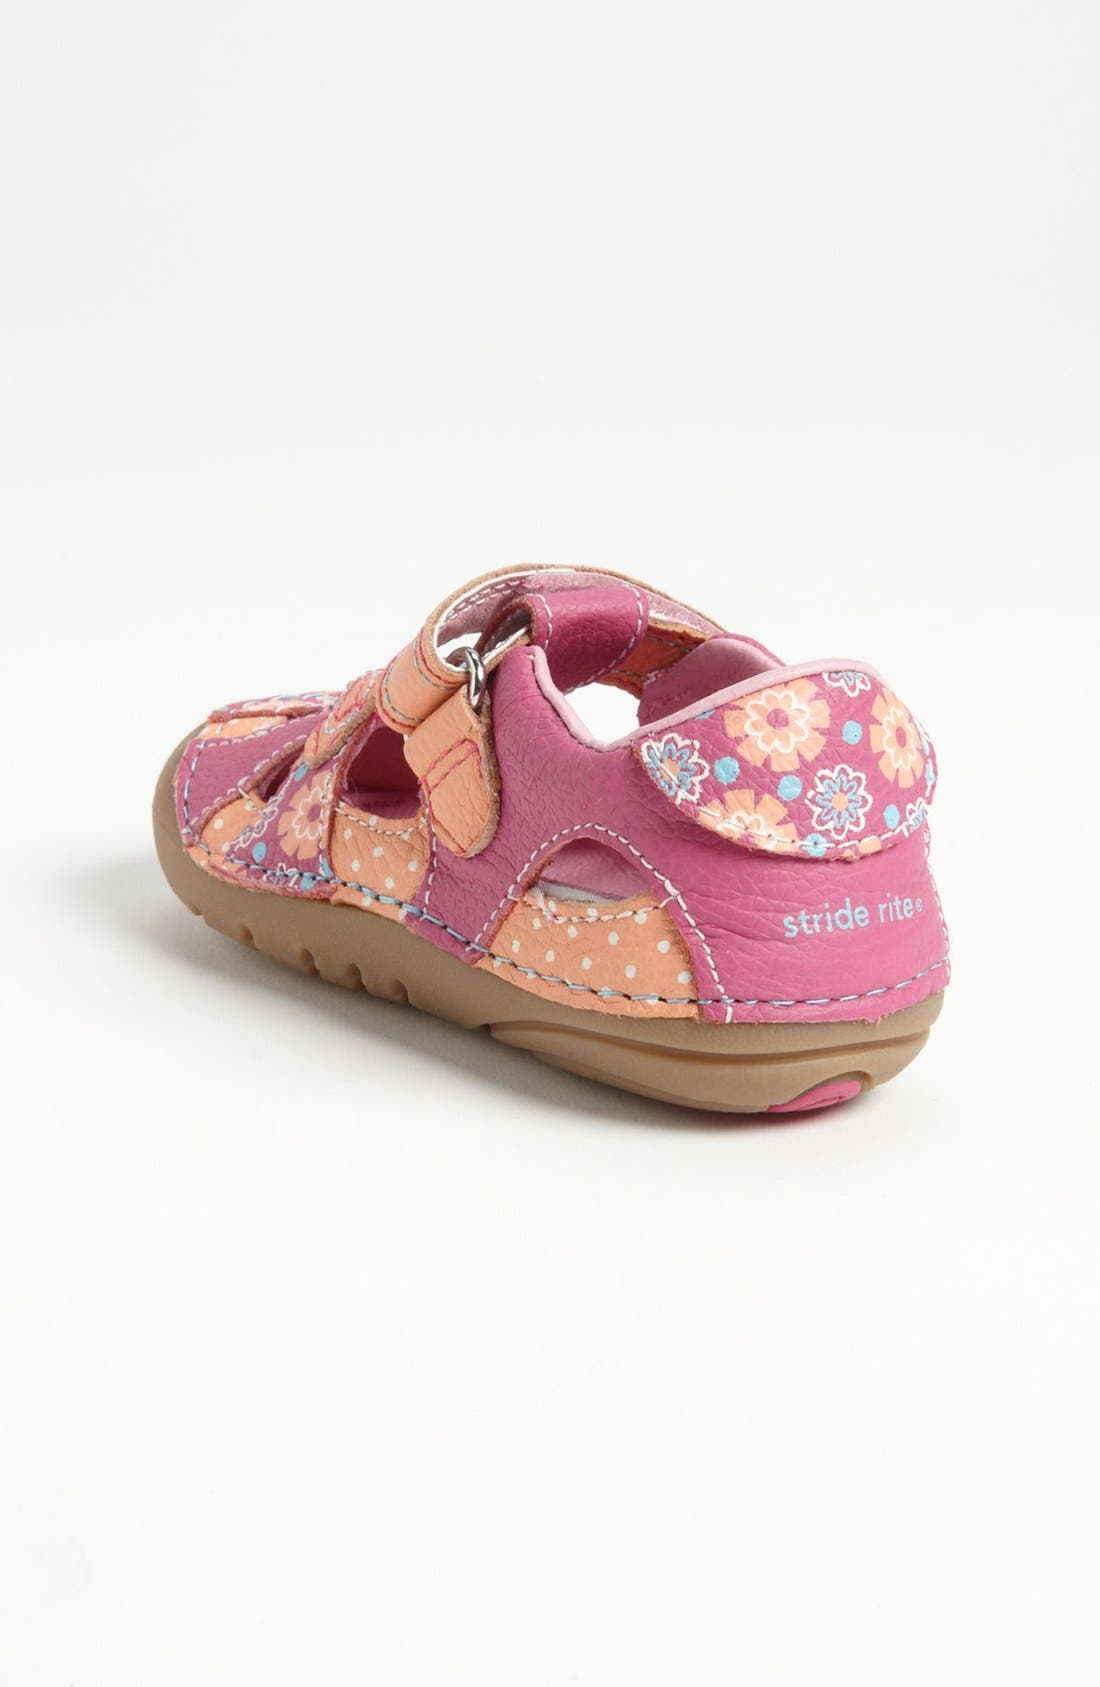 Alternate Image 2  - Stride Rite 'Poppy' Sandal (Baby & Walker)